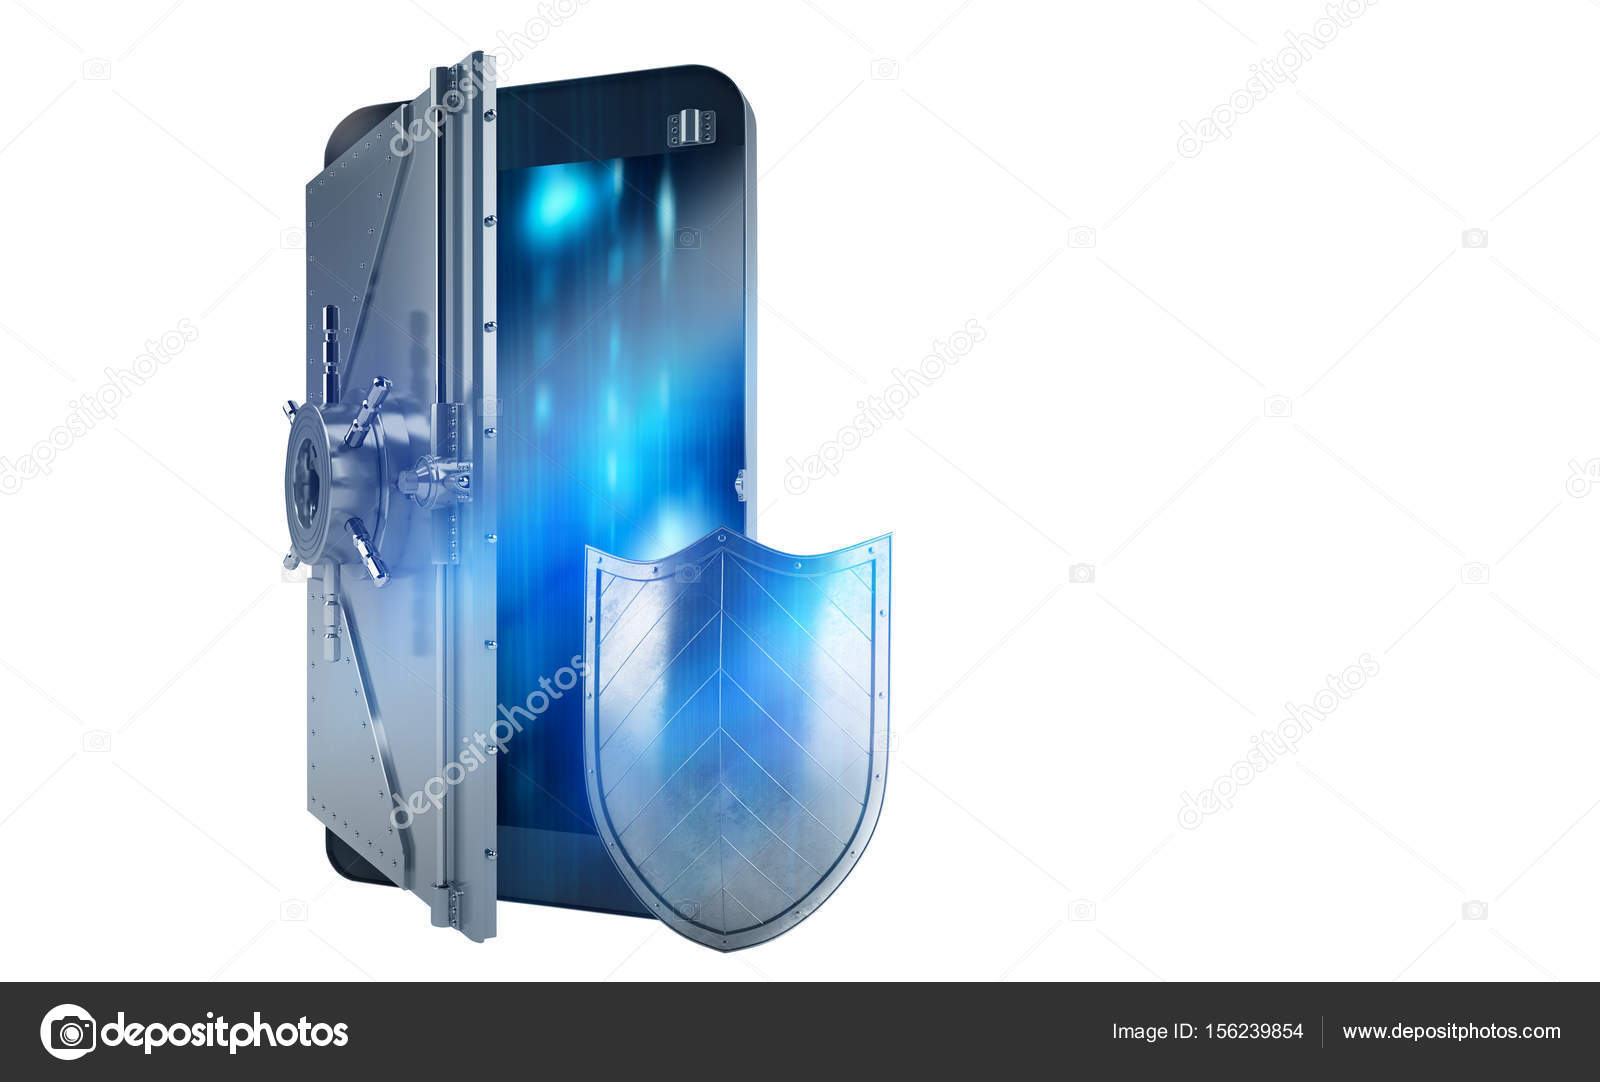 Safe cellphone from hacker attack — Stock Photo